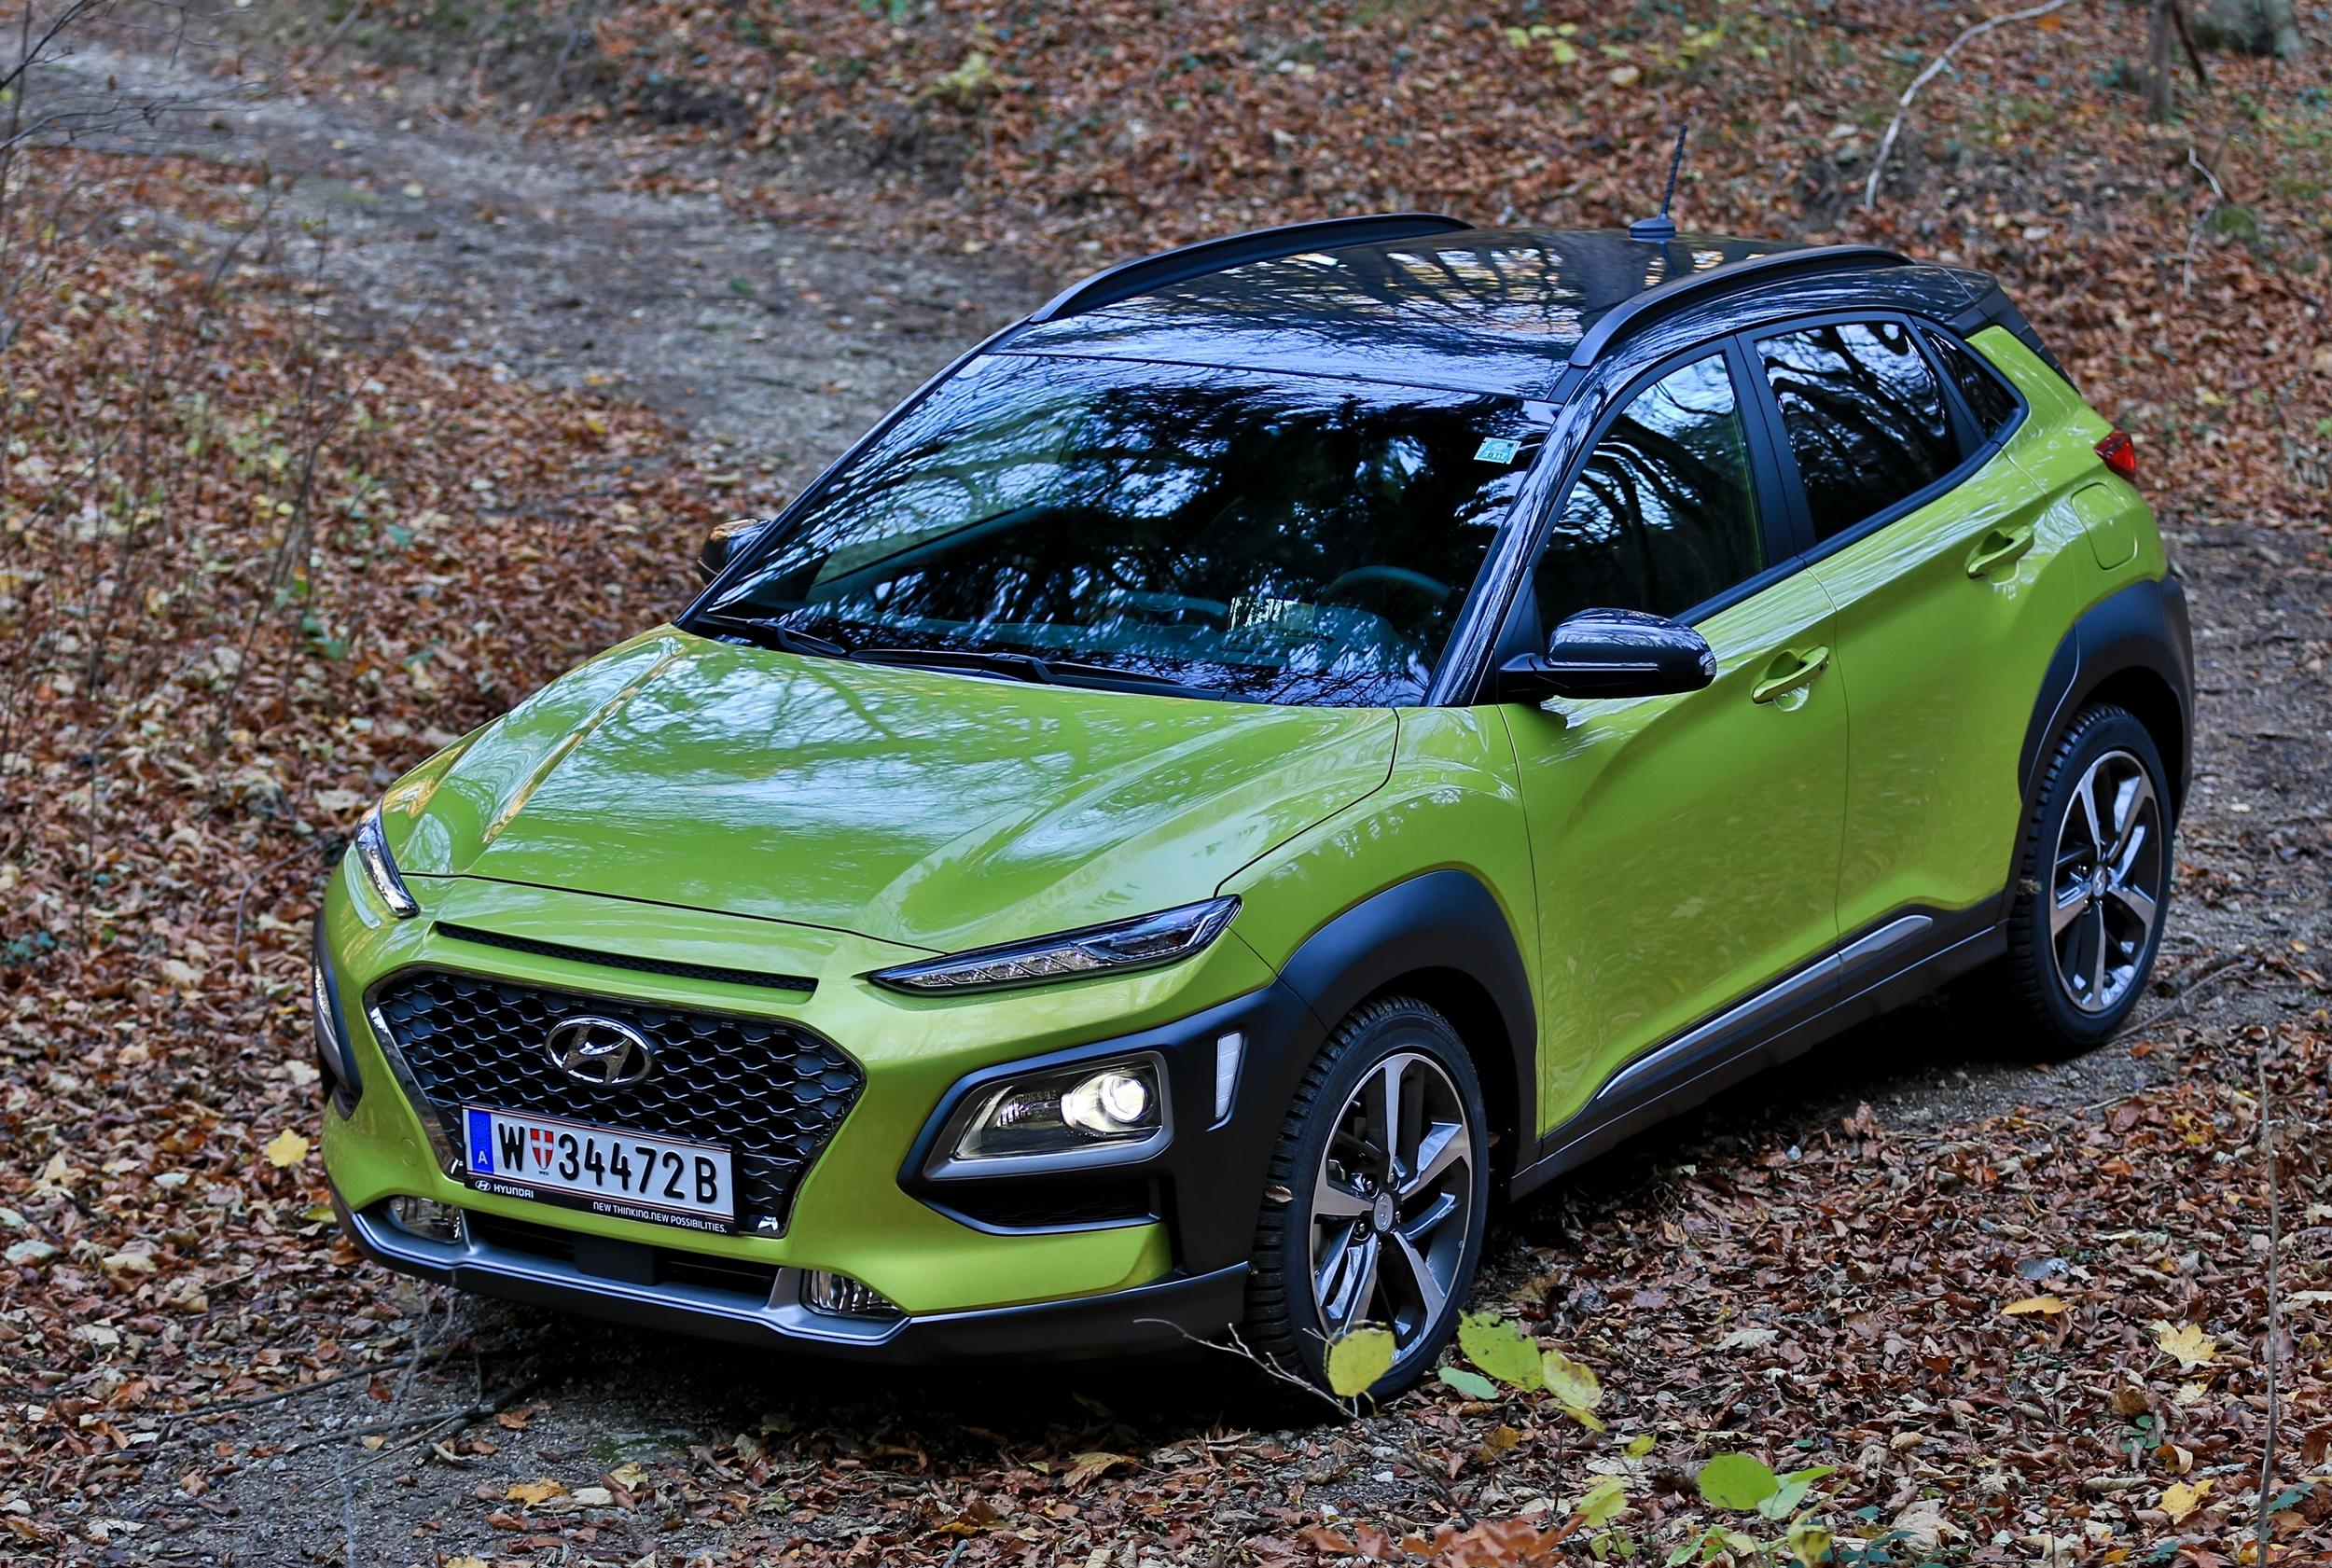 der neue hyundai kona im kurier test. Black Bedroom Furniture Sets. Home Design Ideas